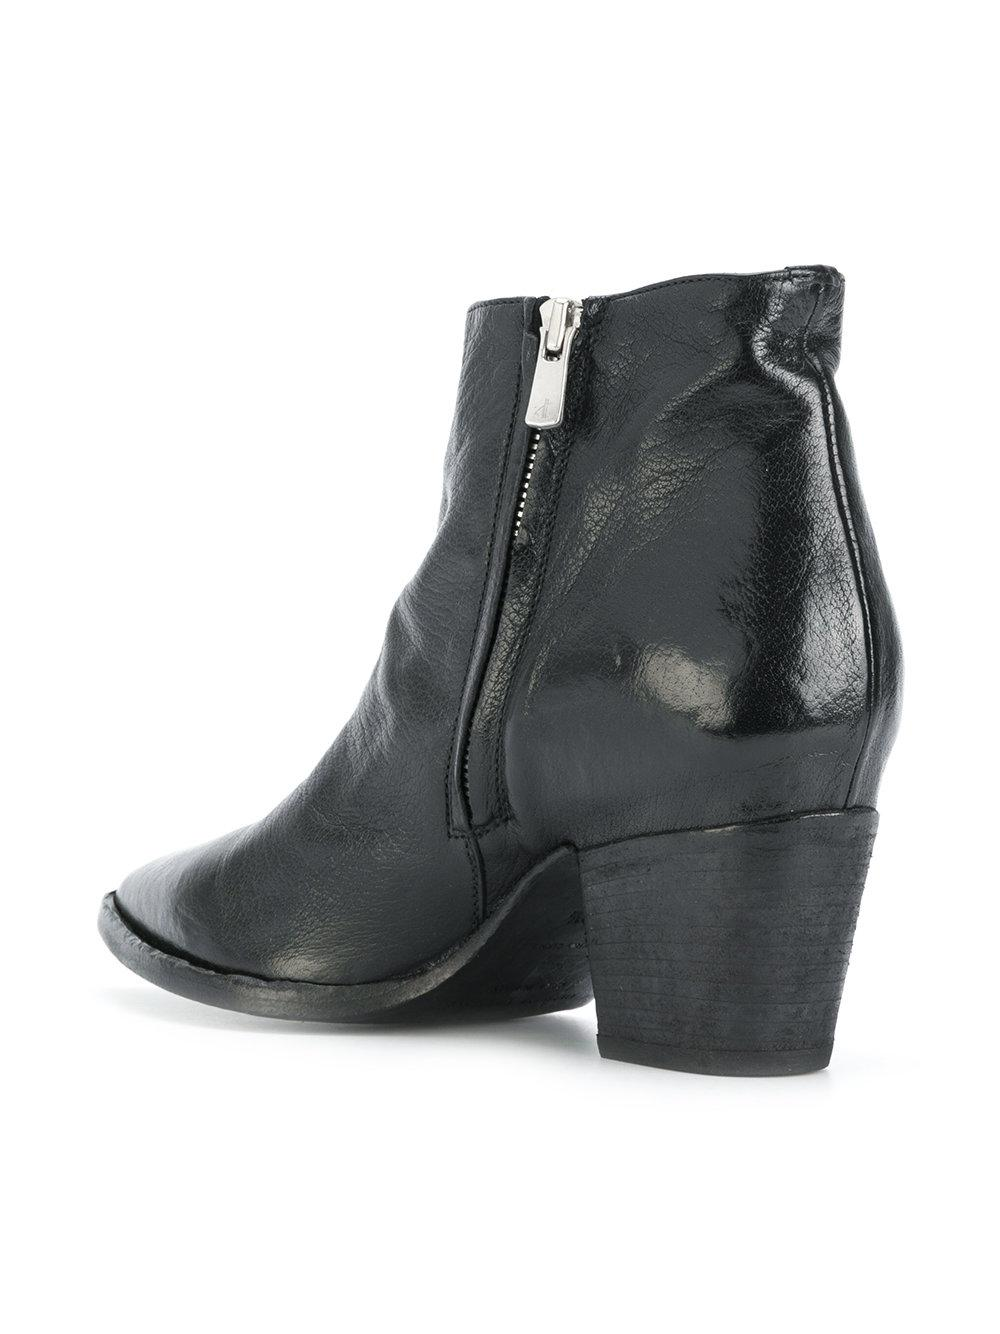 Officine Creative Leather Side-zip Ankle Boots in Black